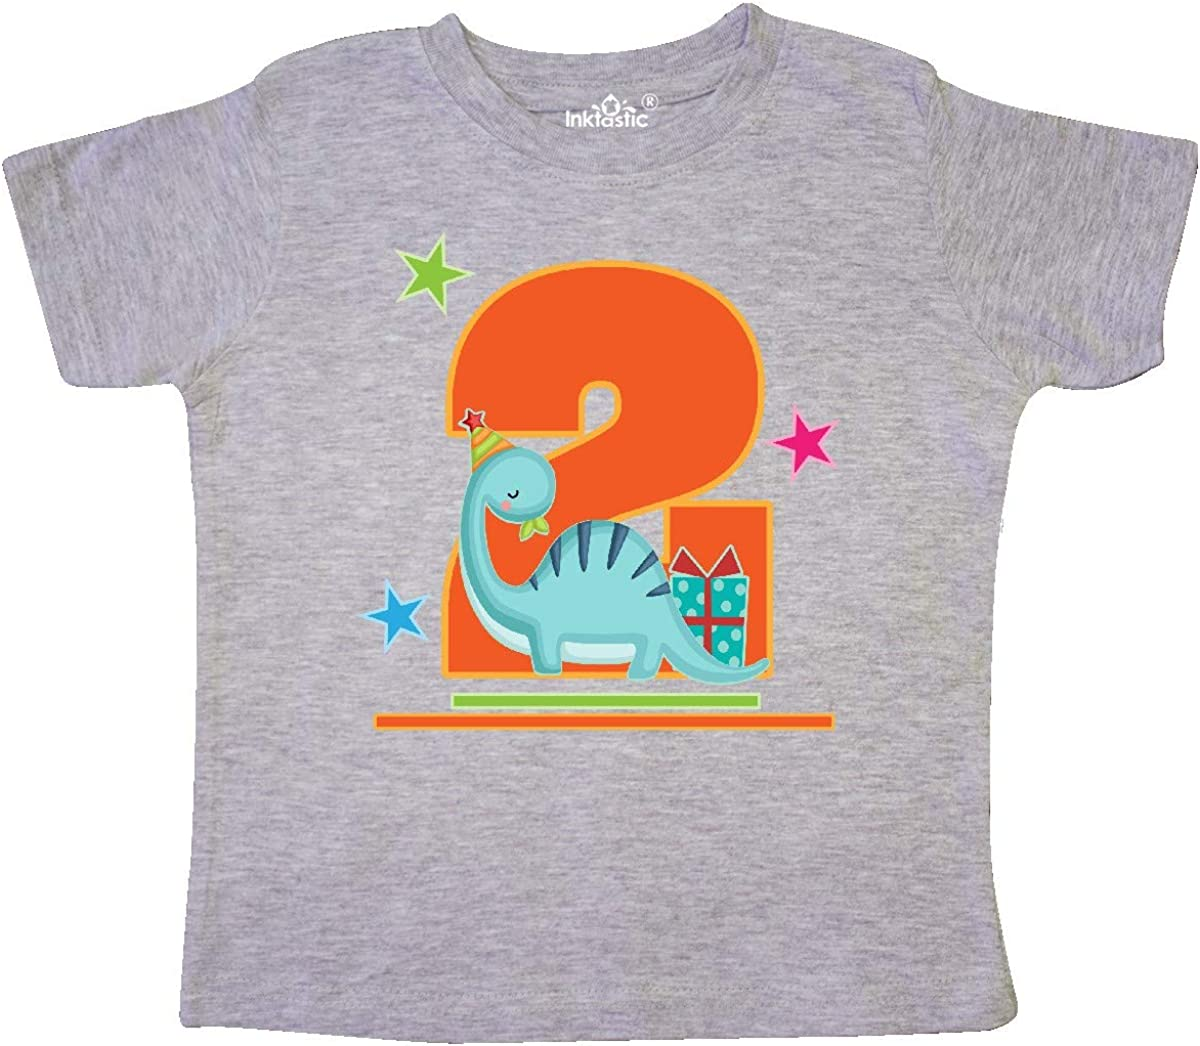 inktastic 2nd Birthday Dinosaur 2 Year Old Toddler T-Shirt